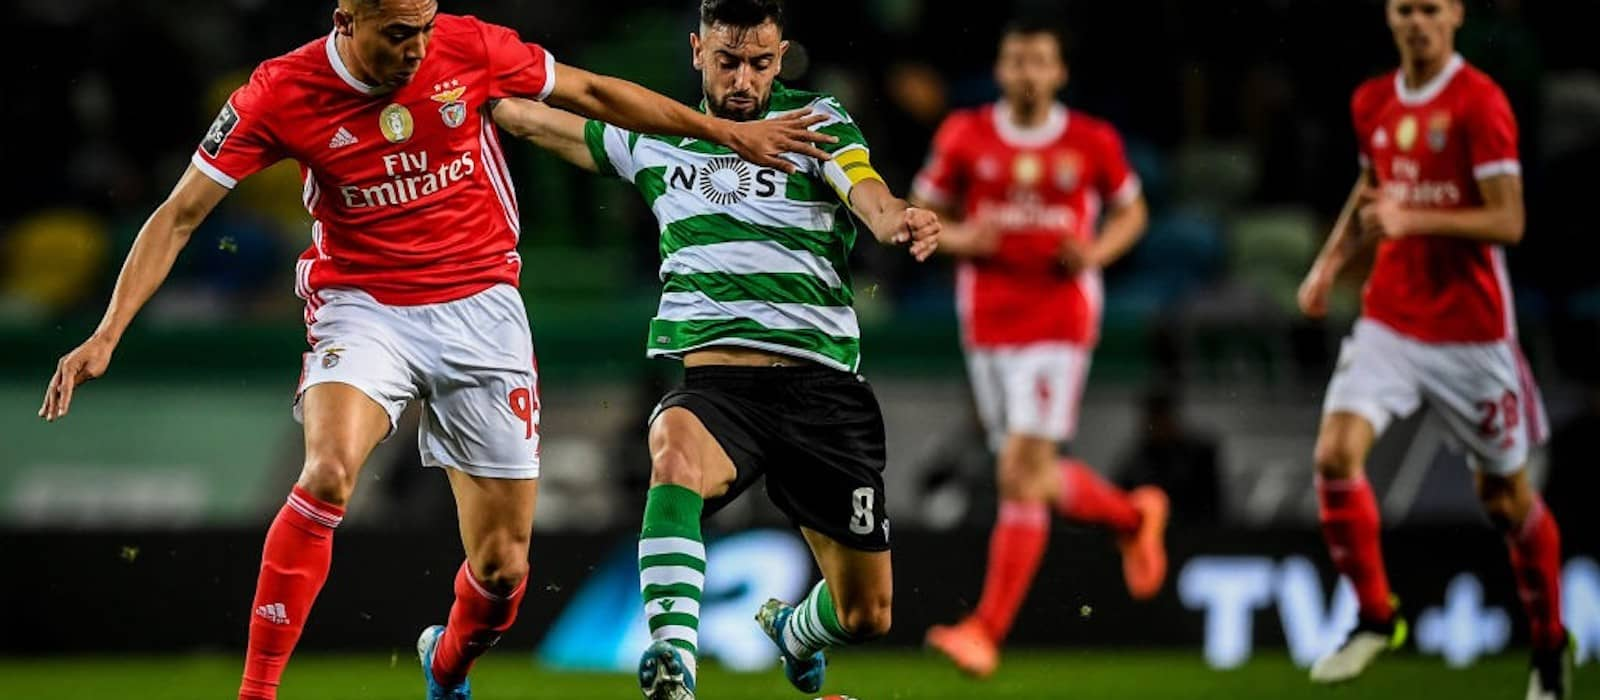 From Portugal: Manchester City set to offer €100 million for Bruno Fernandes